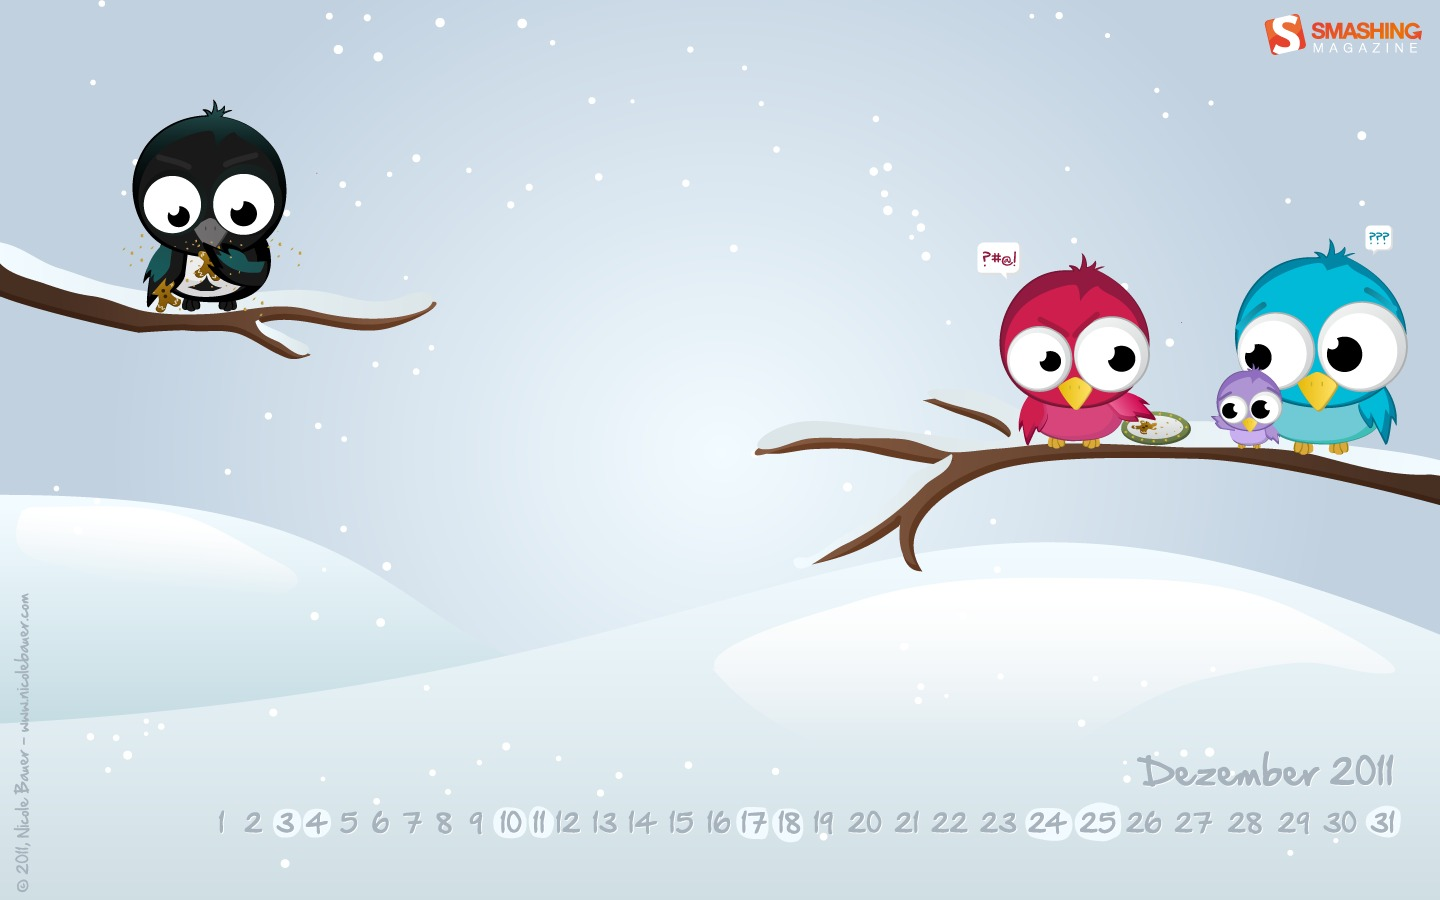 In January Calendar Wallpaper 31313